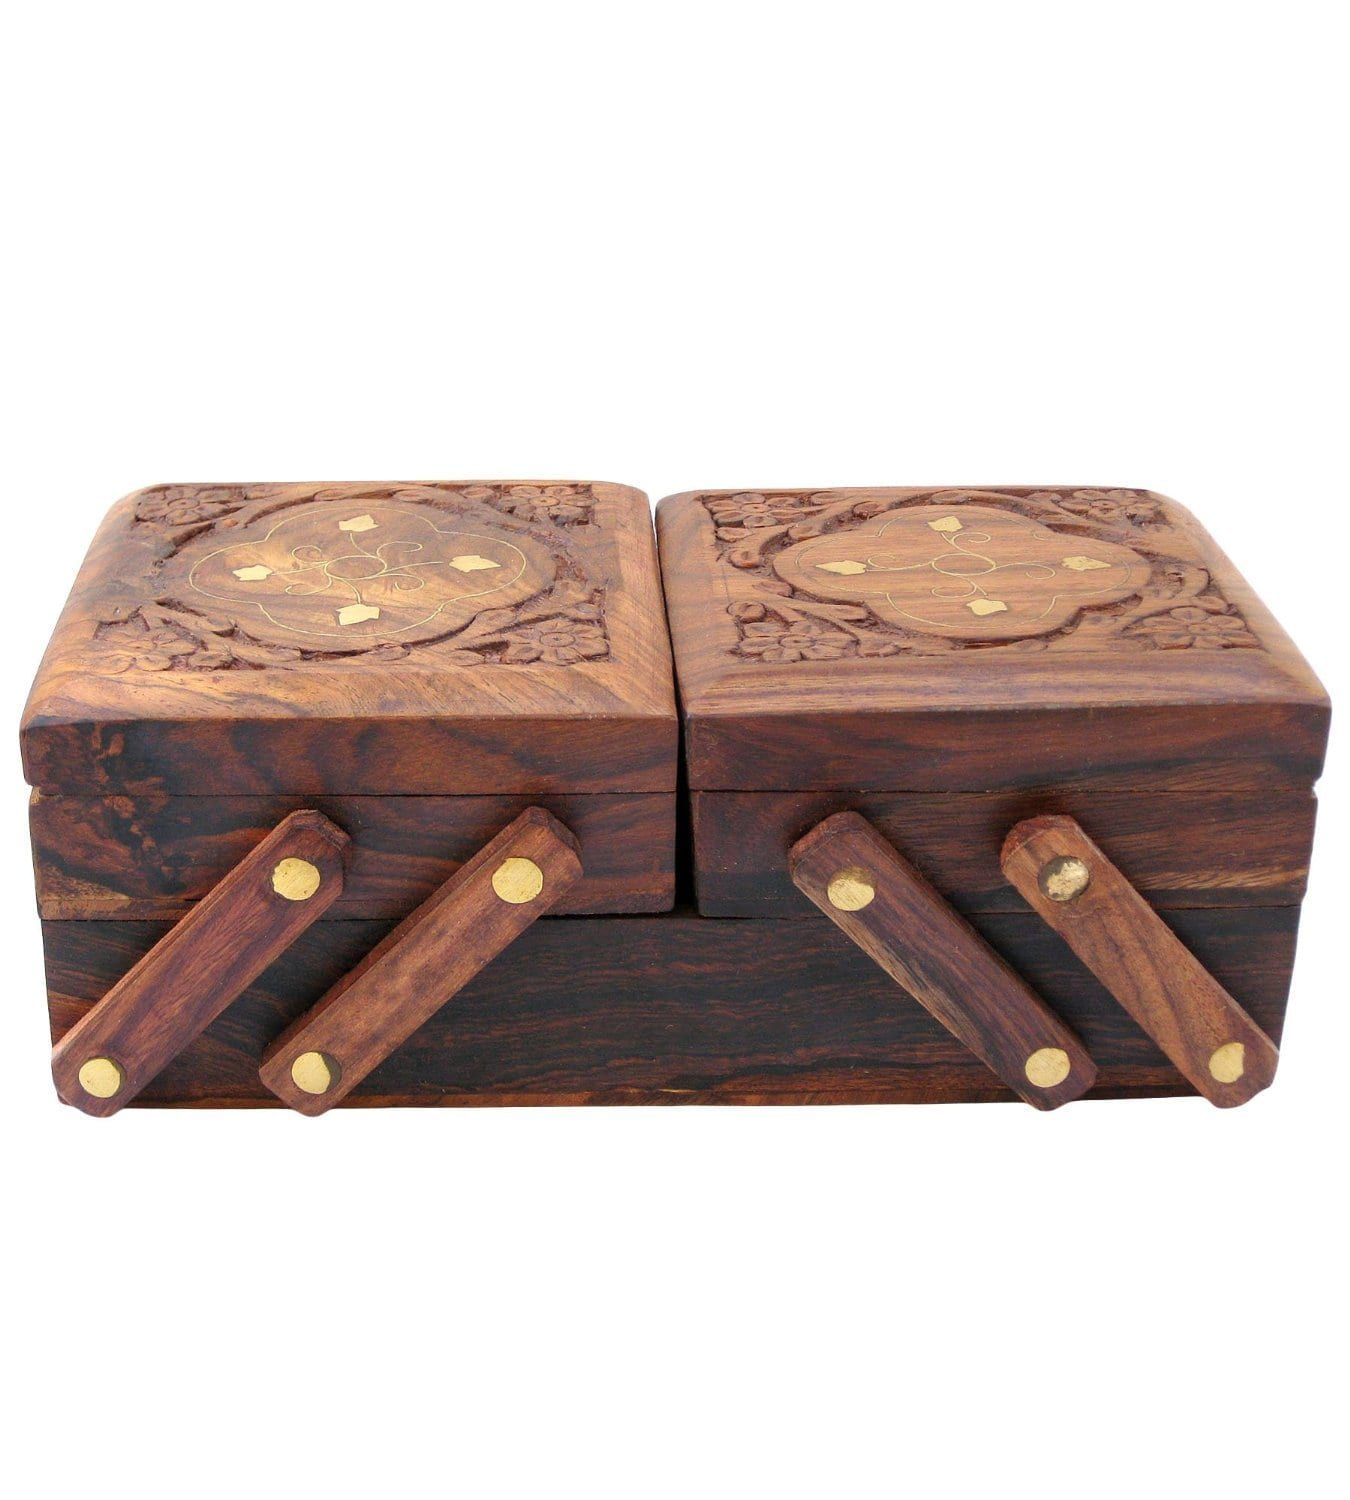 10 Best Jewellery Box Designs To Store Your Jewellery